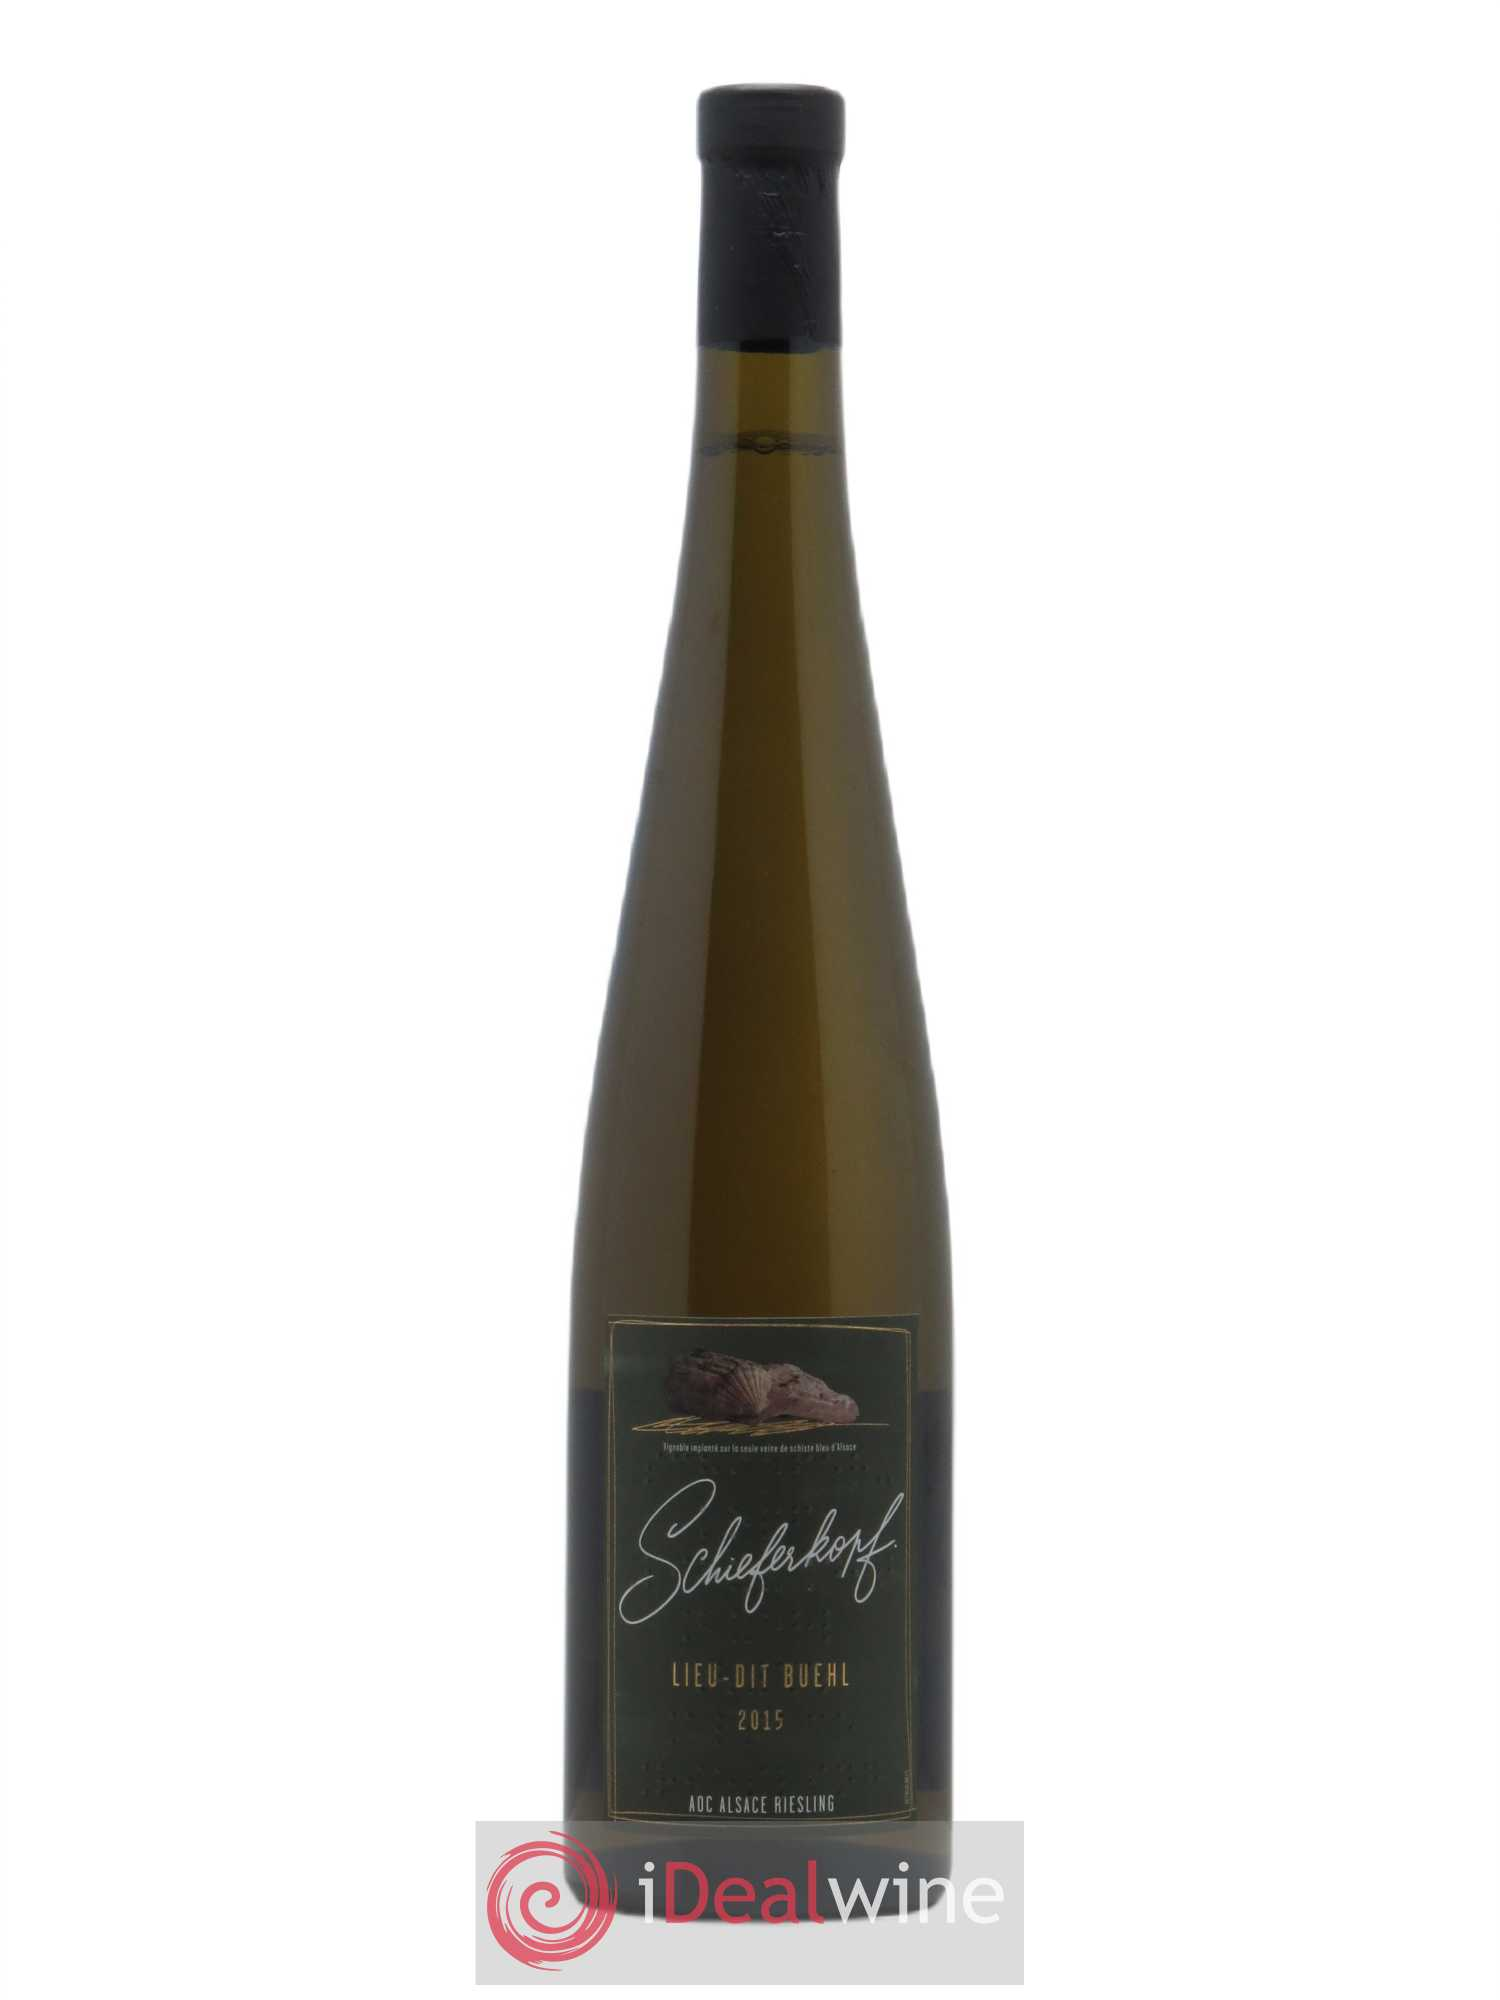 Riesling Lieu-dit Buehl Schieferkopf - Chapoutier  2015 - Lot of 1 Bottle